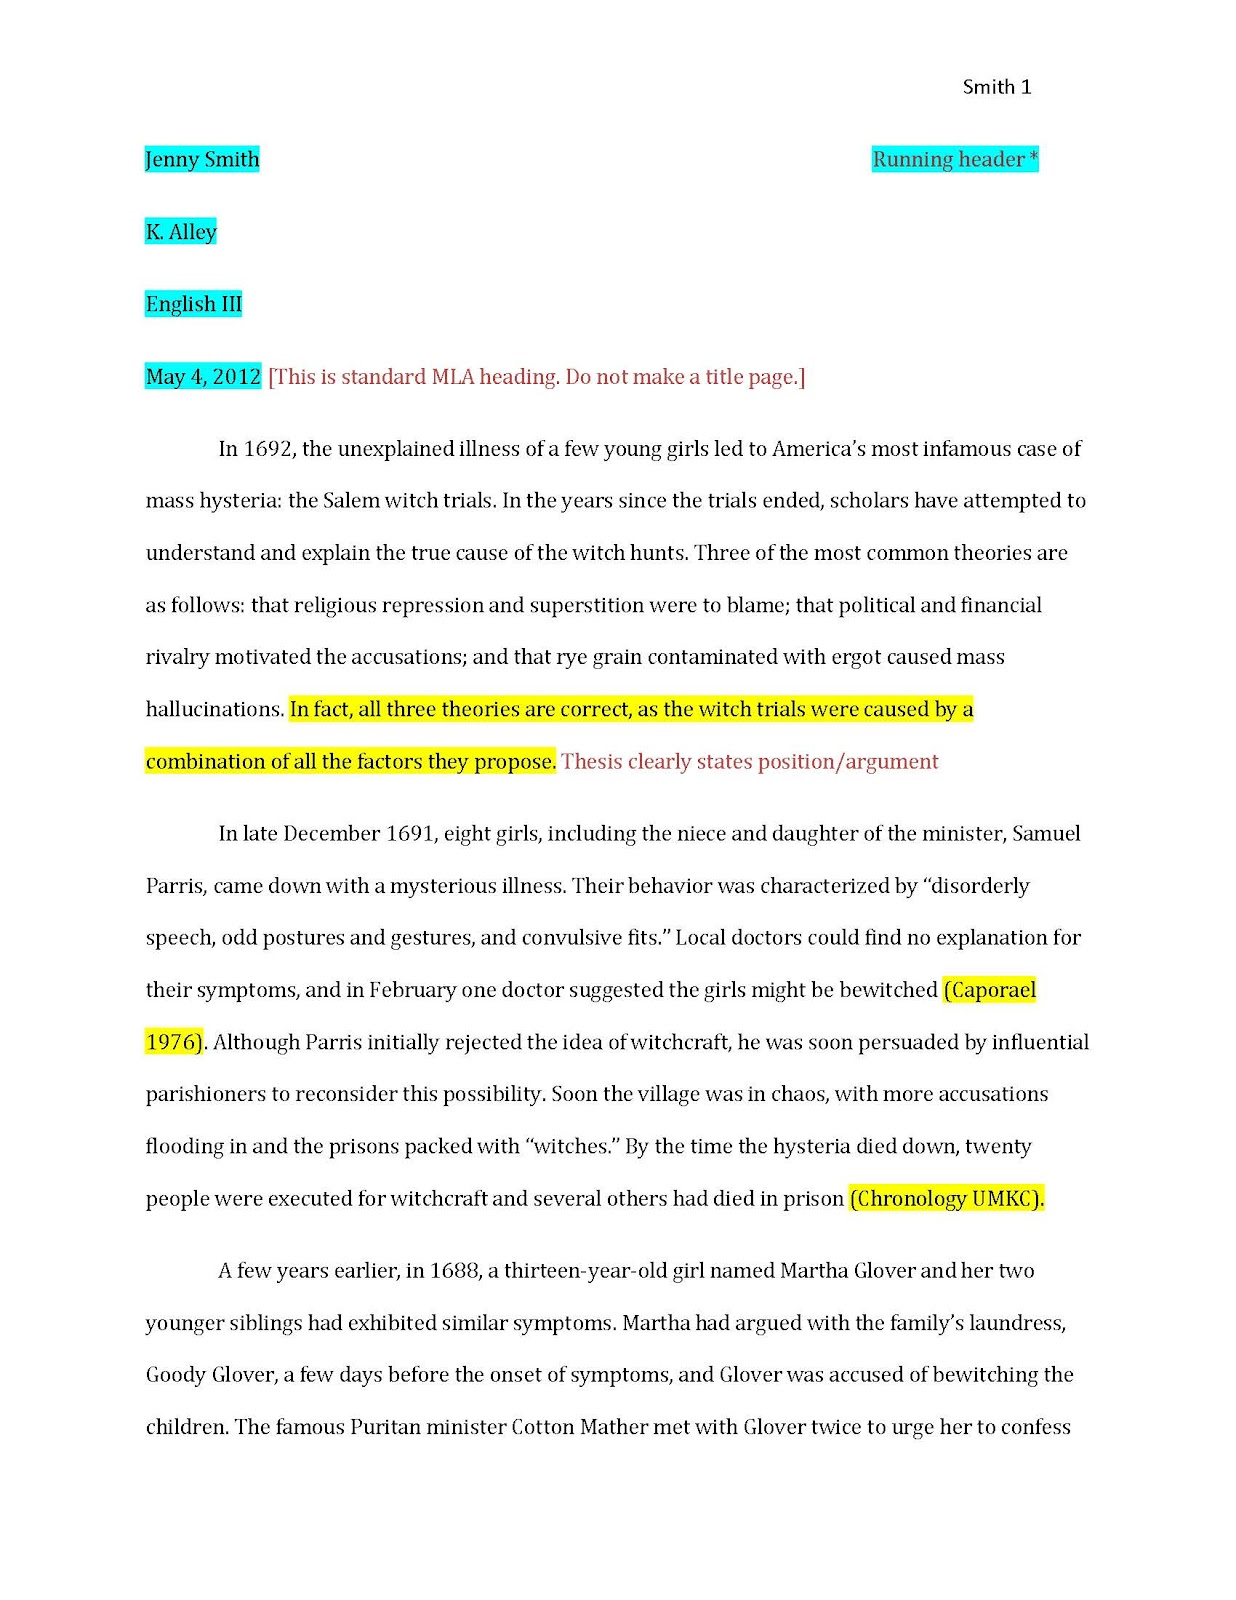 research thesis generator This resource provides tips for creating a thesis statement and examples of different types of thesis statements.